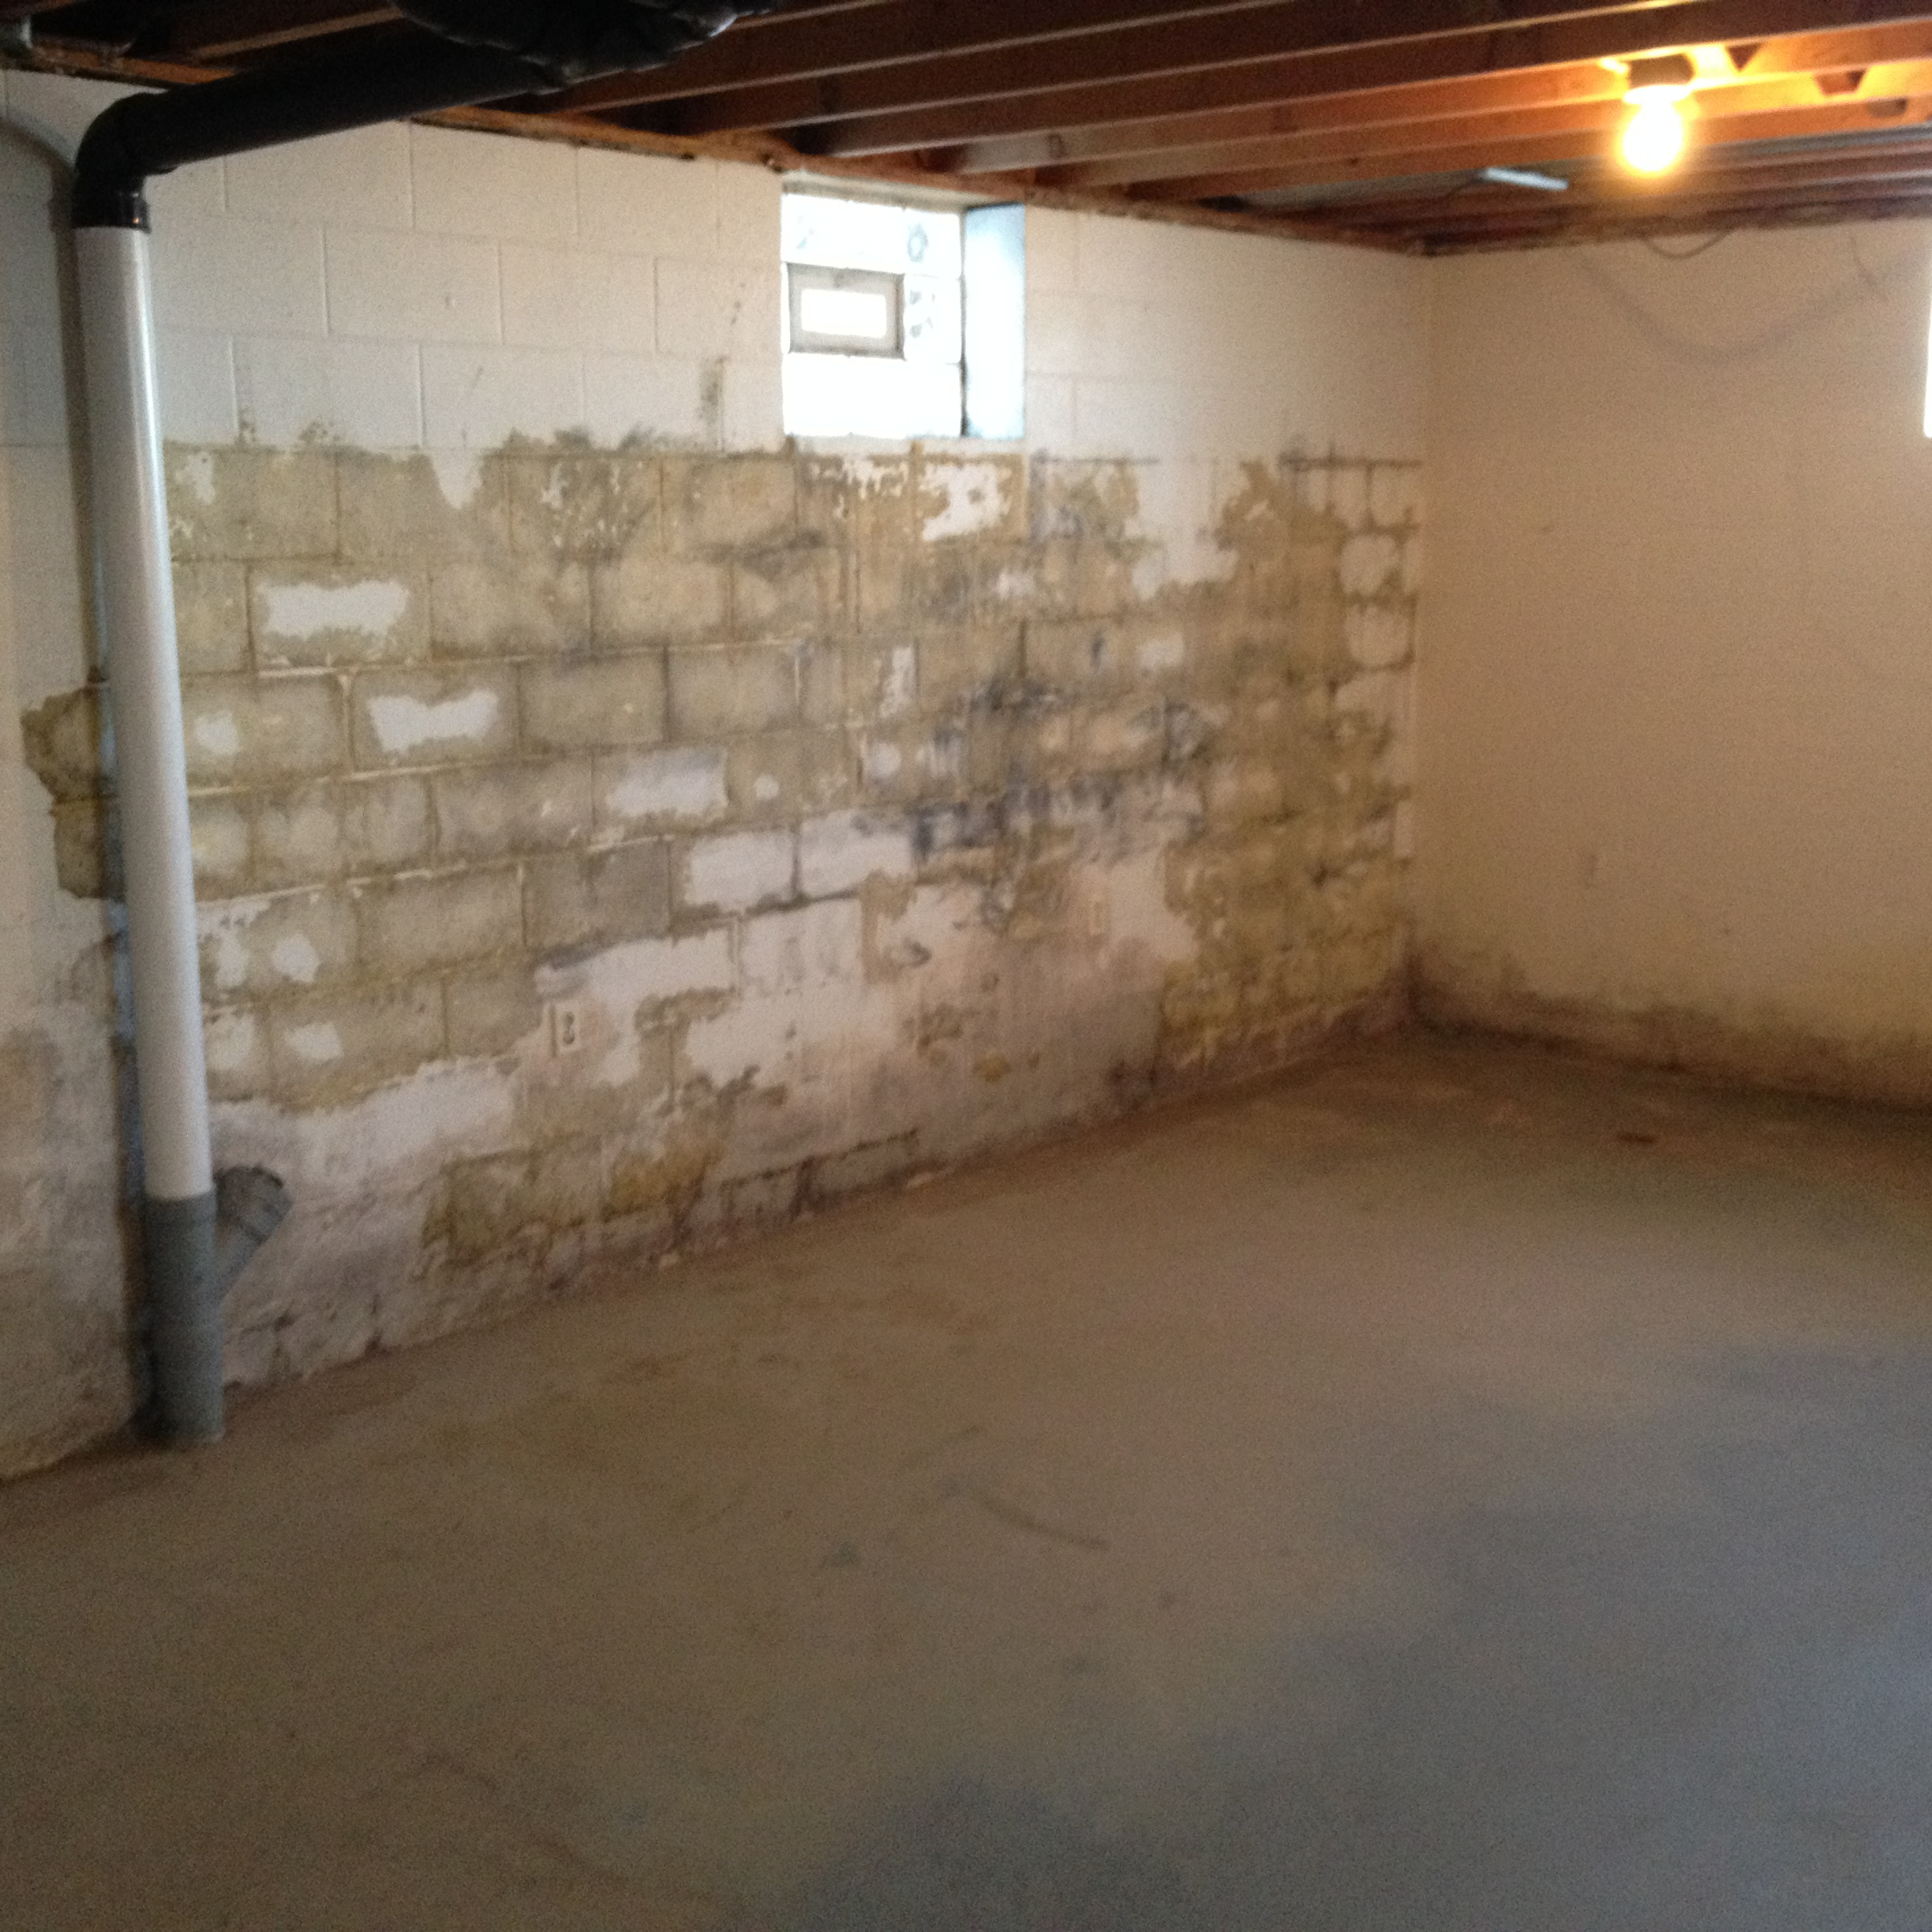 Basement Waterproofing Diy Products Contractor Foundation Systems: Is It Worth The Time And Expense?